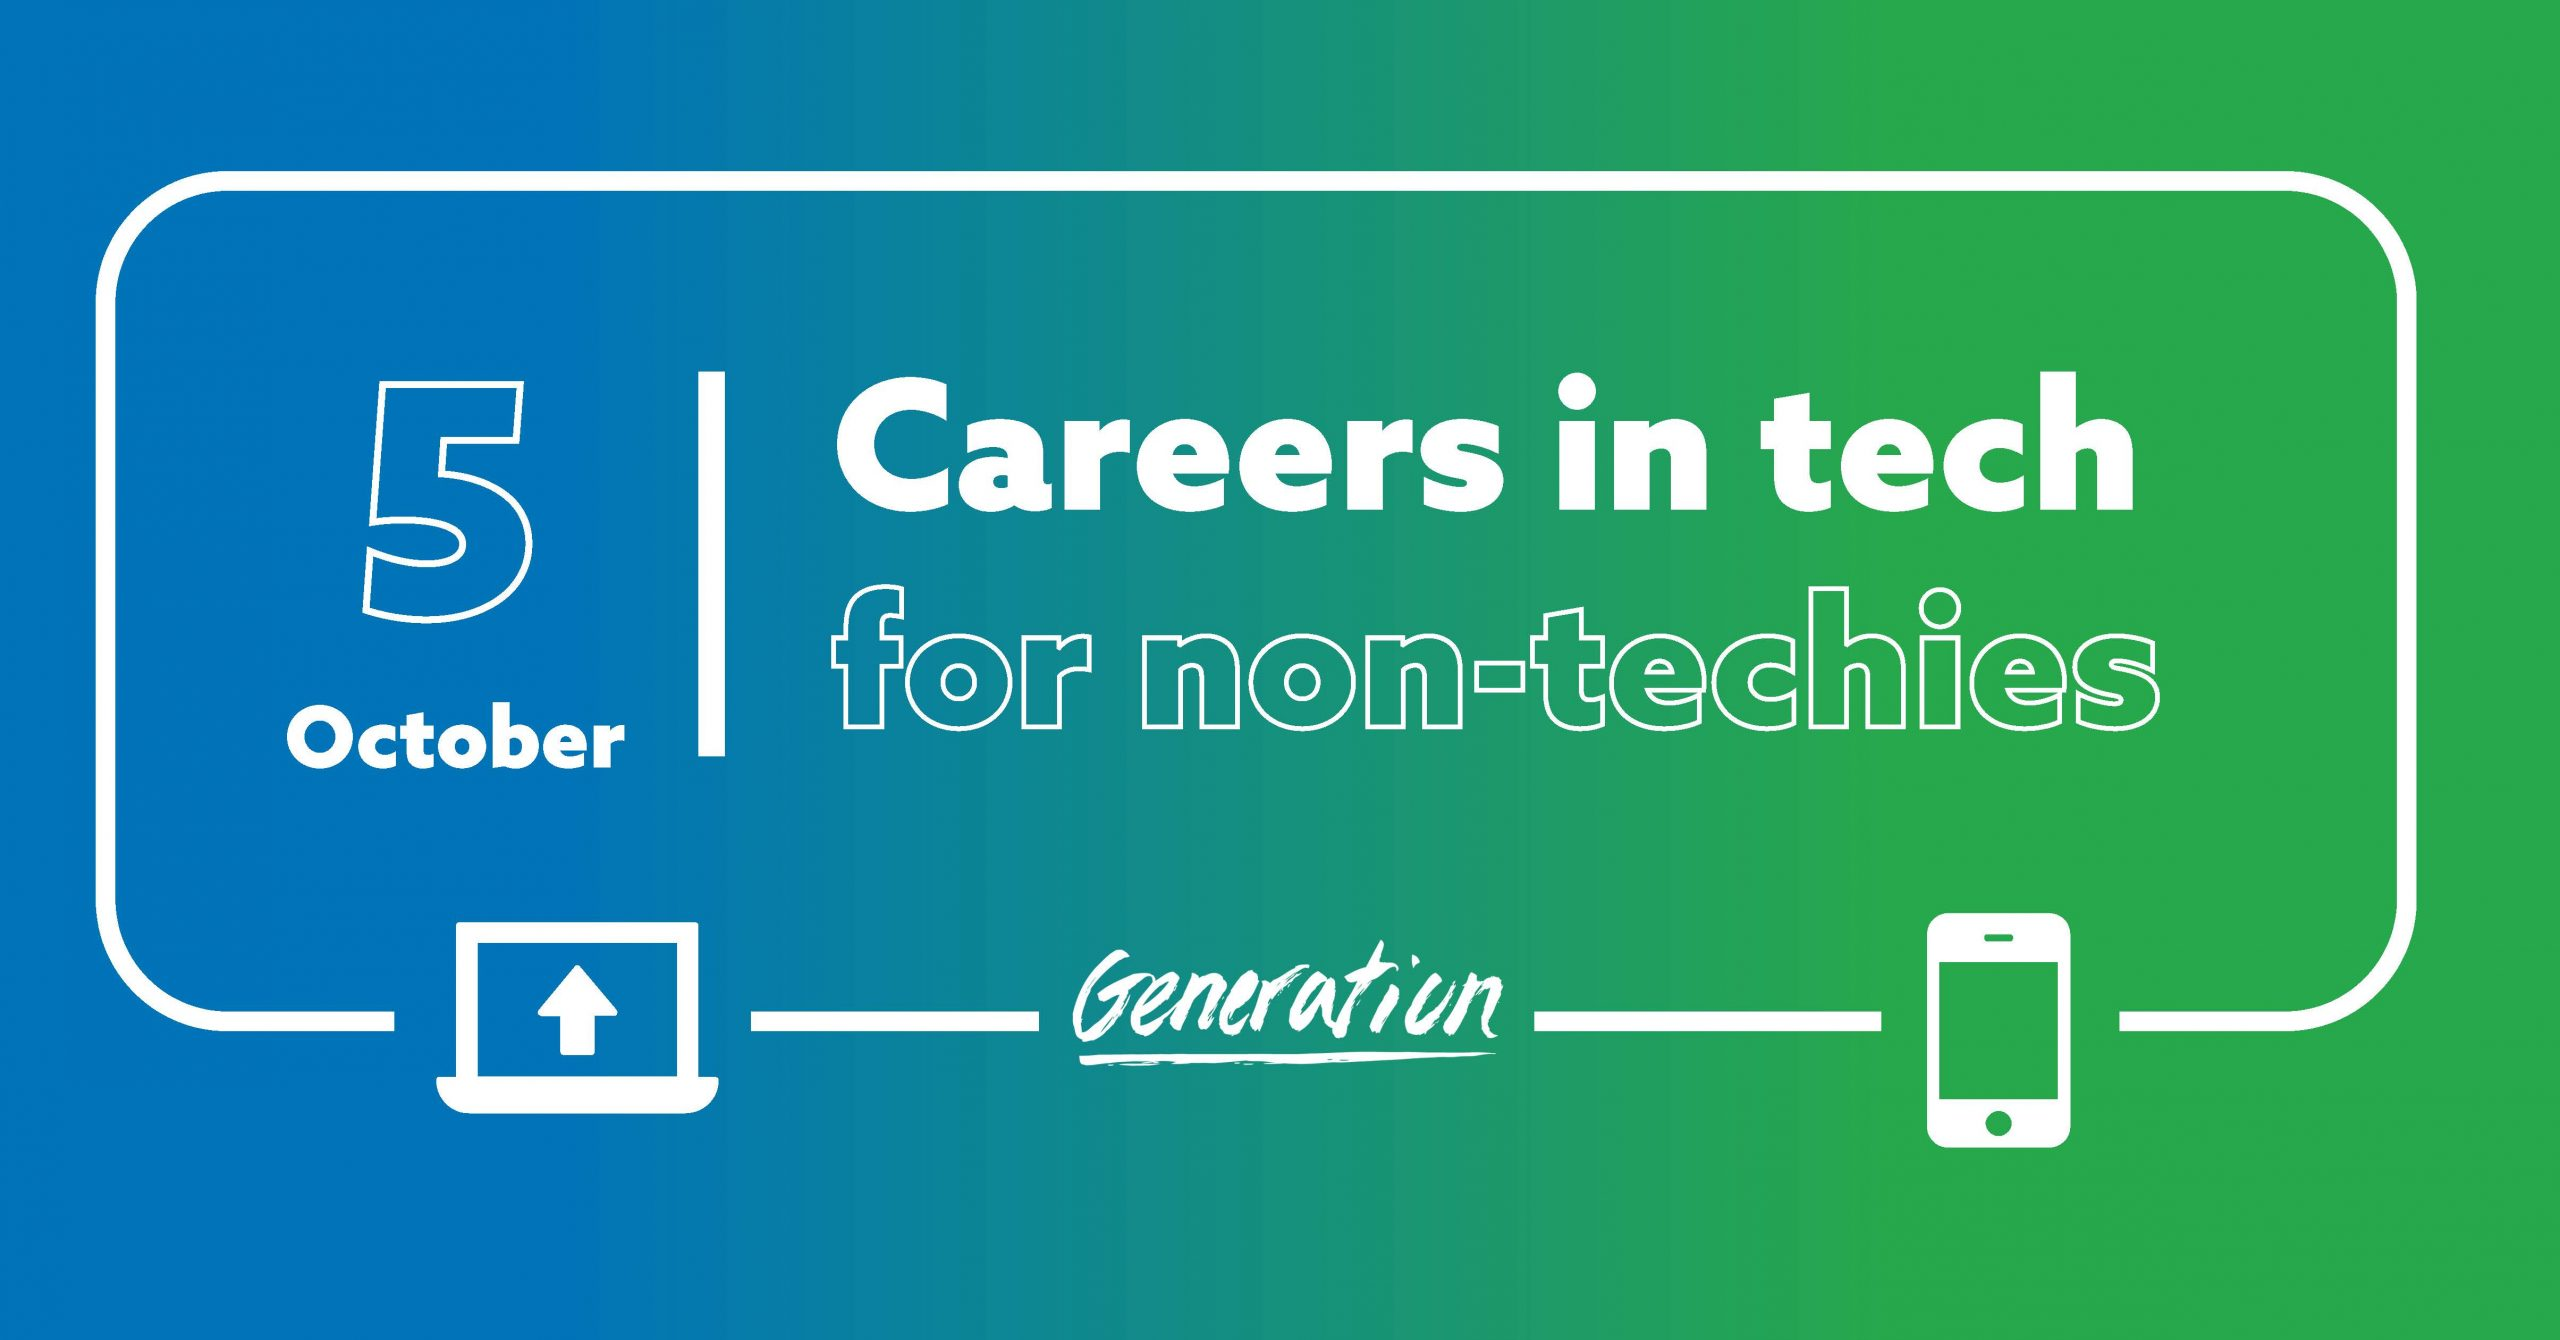 careers in tech for non-techies event image